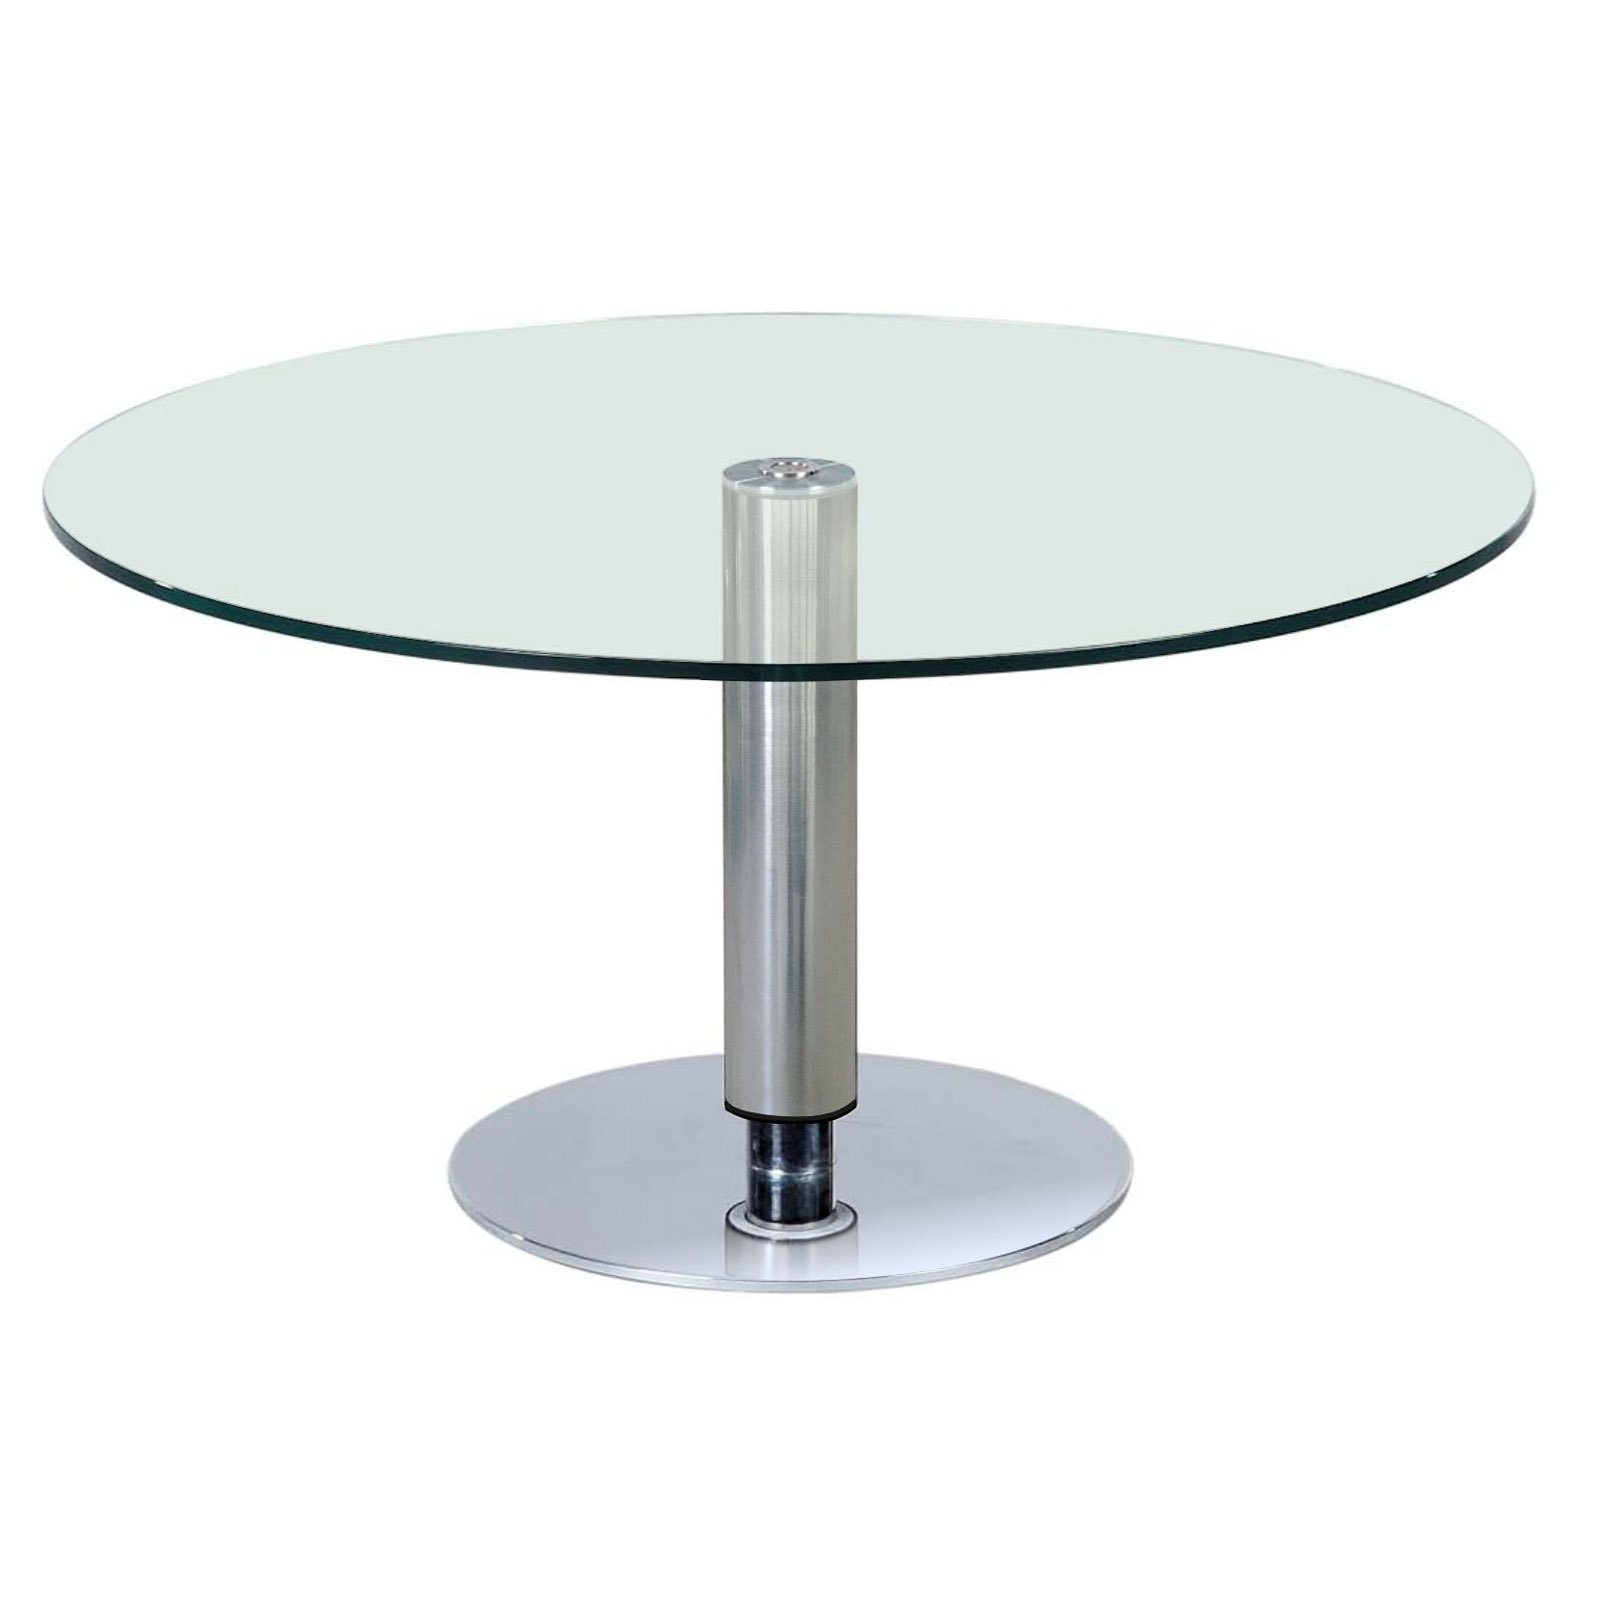 Wondrous Chintaly Shannon Round Hi Low Dining Table Theyellowbook Wood Chair Design Ideas Theyellowbookinfo